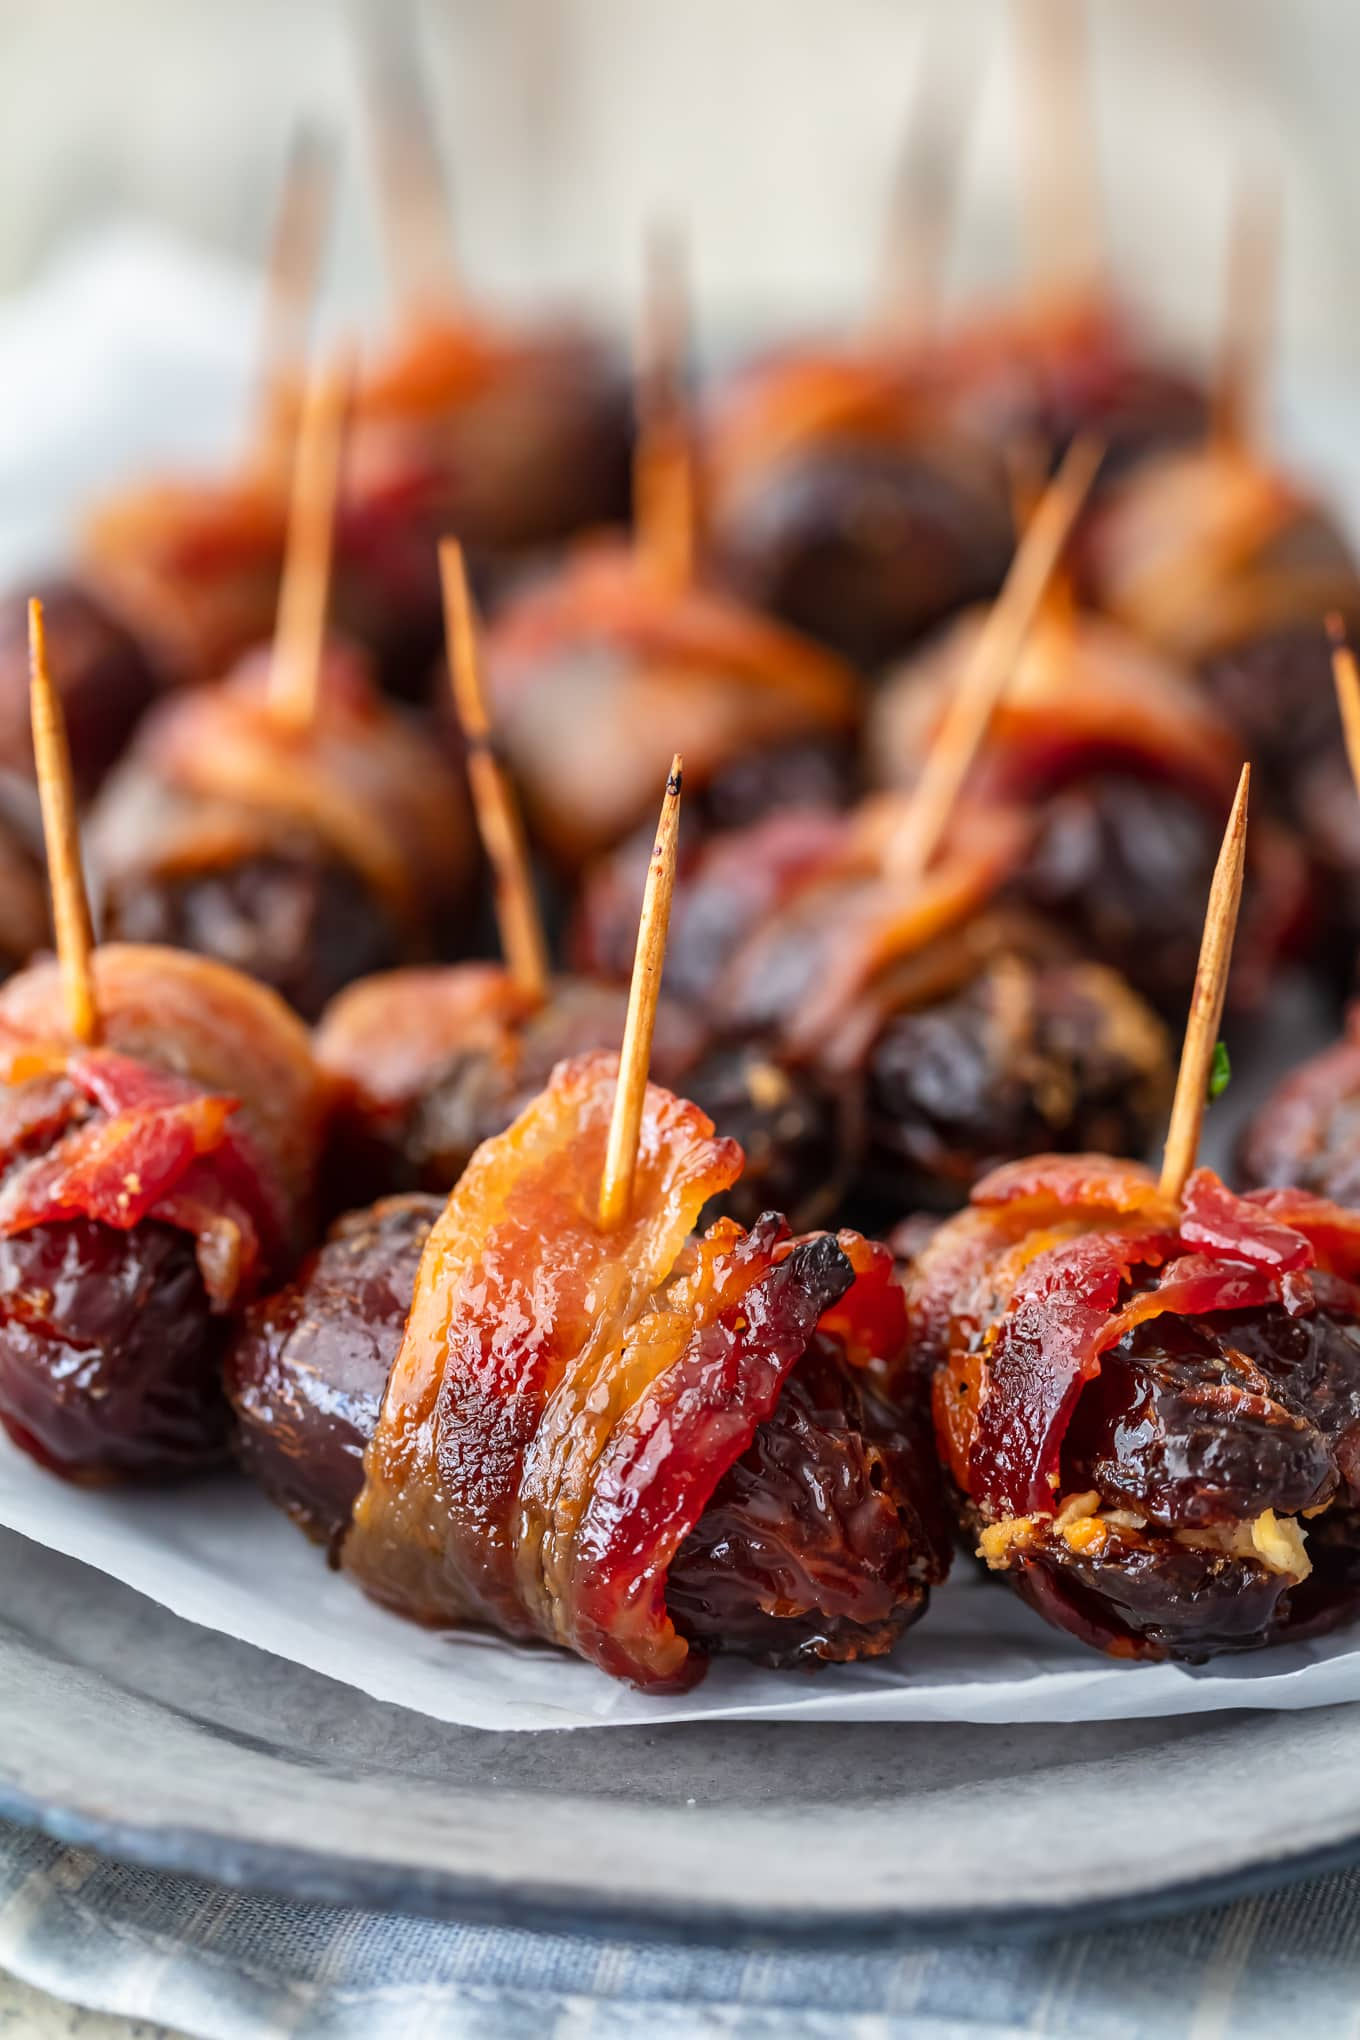 bacon wrapped appetizers on a plate